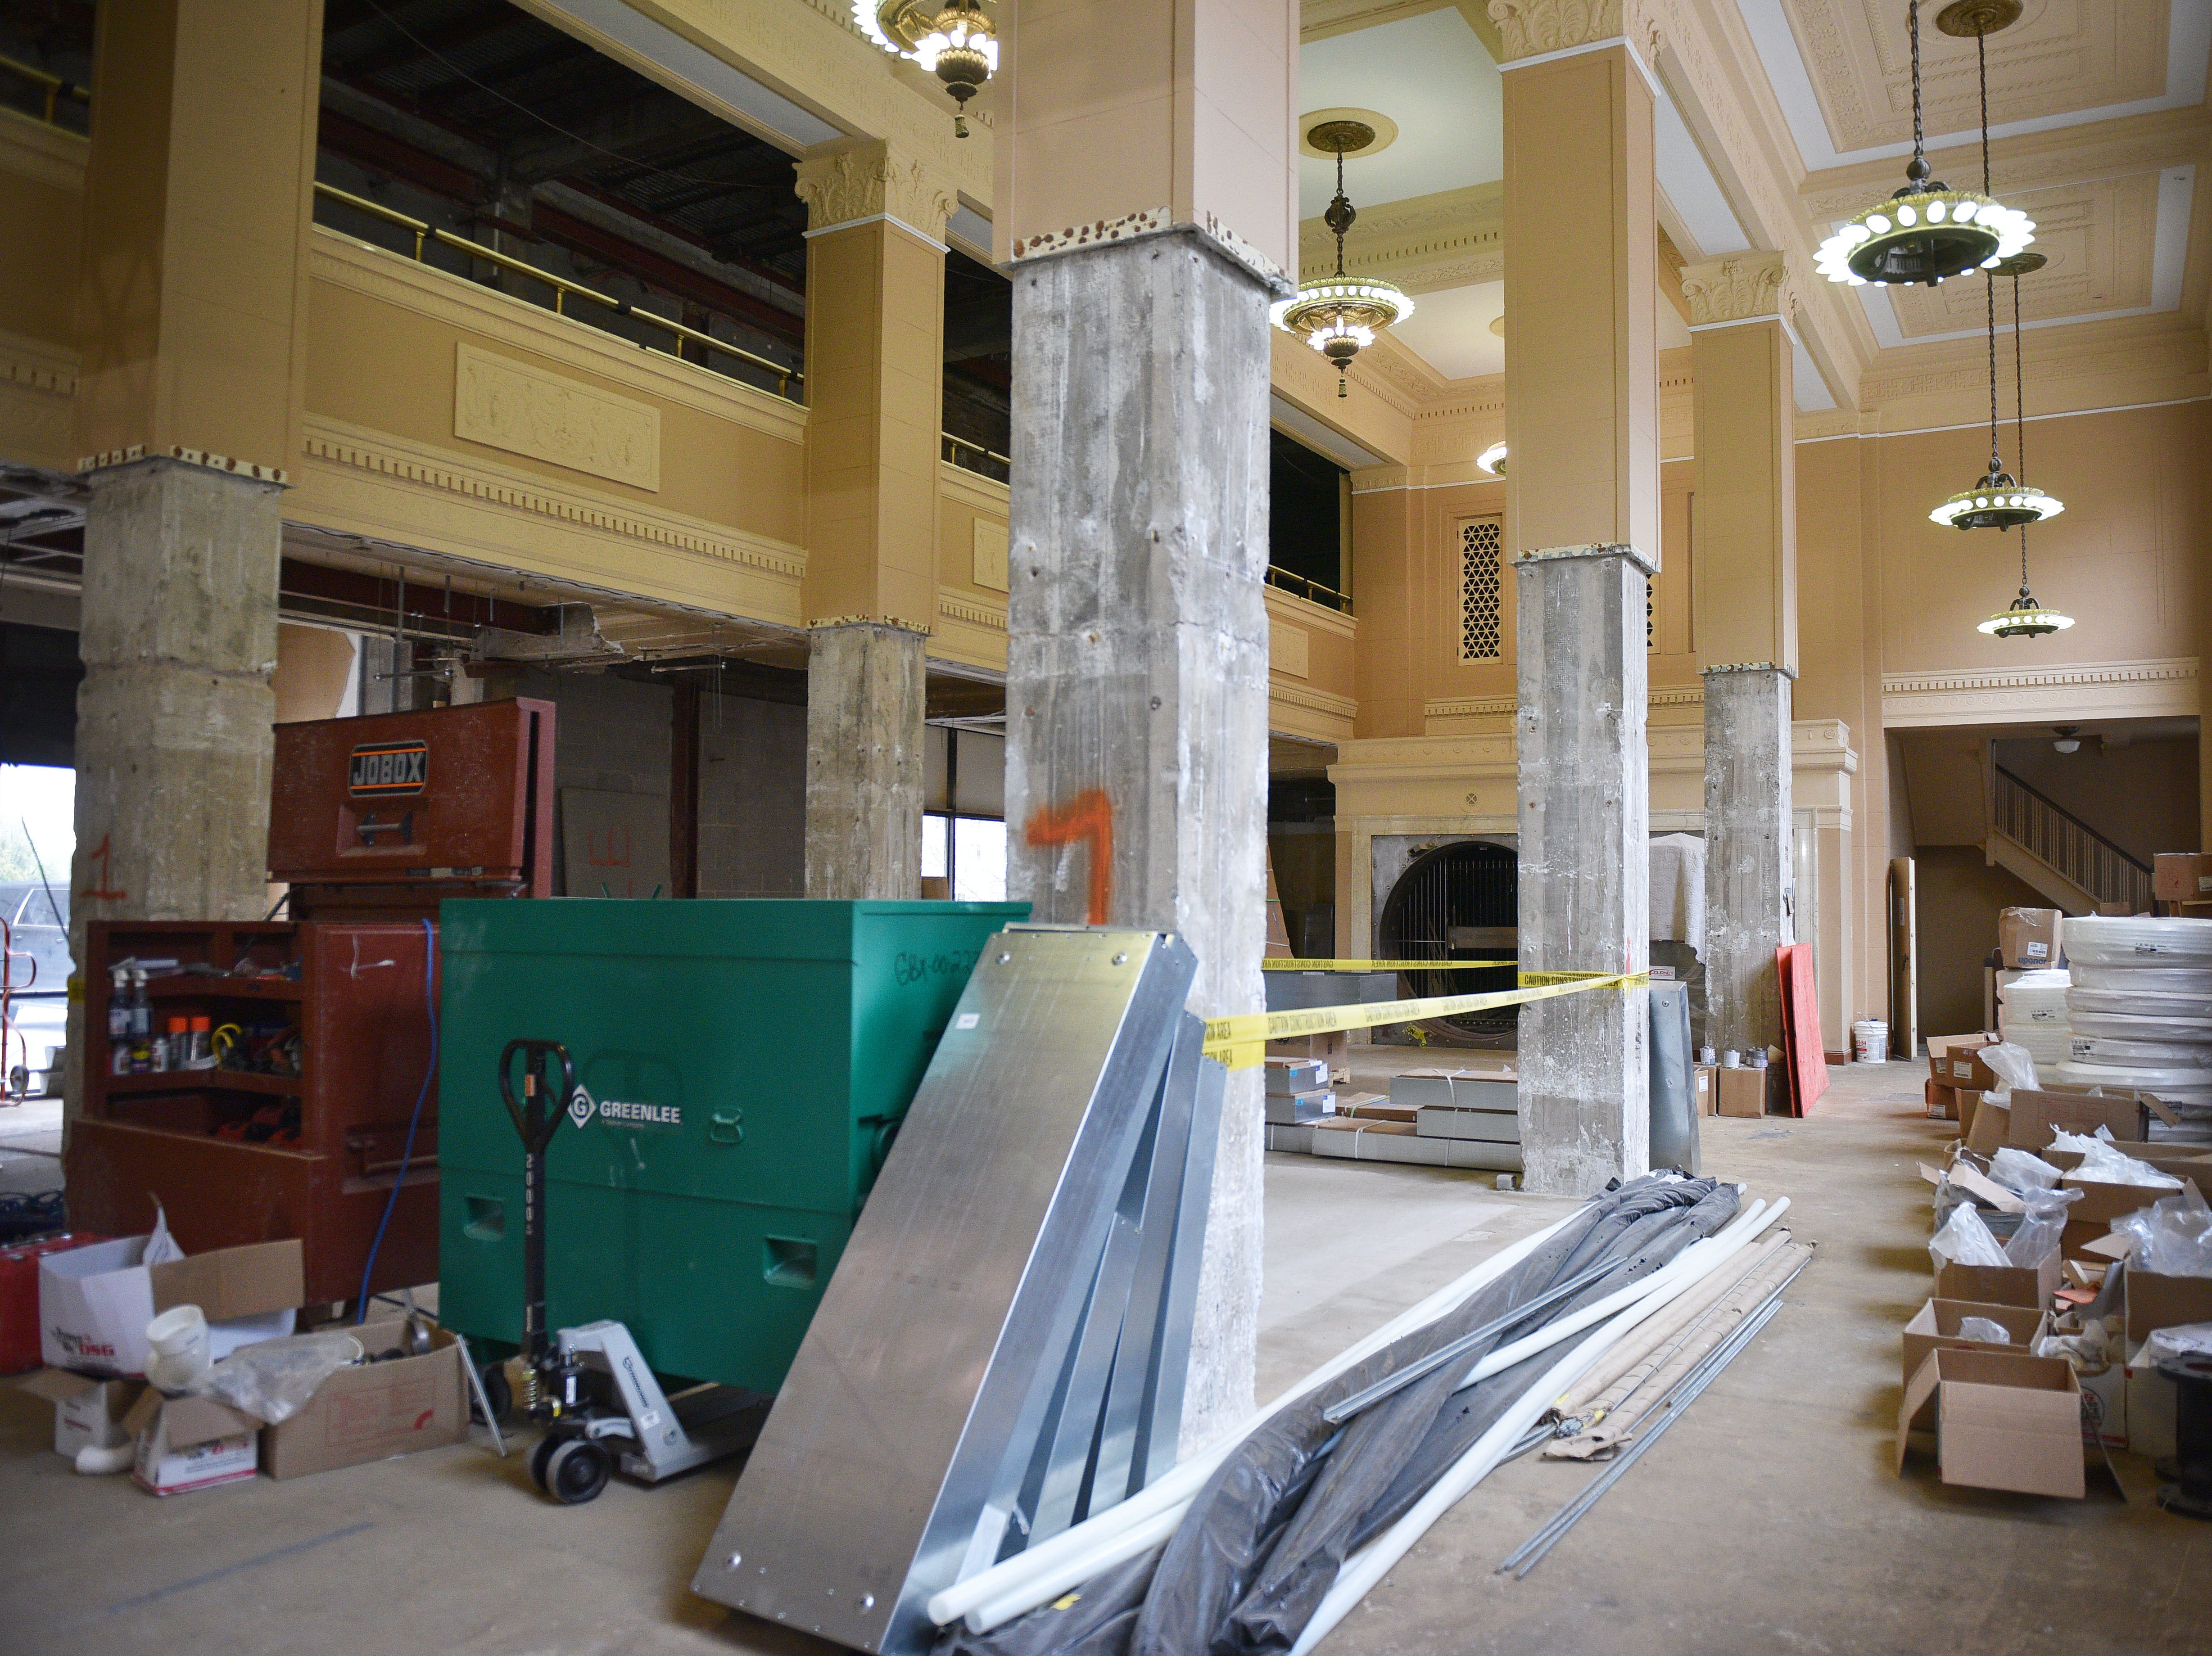 Hotel Phillips Thursday, Oct. 11, in downtown Sioux Falls. The luxury hotel is an ongoing remodel of the old Great Western building.